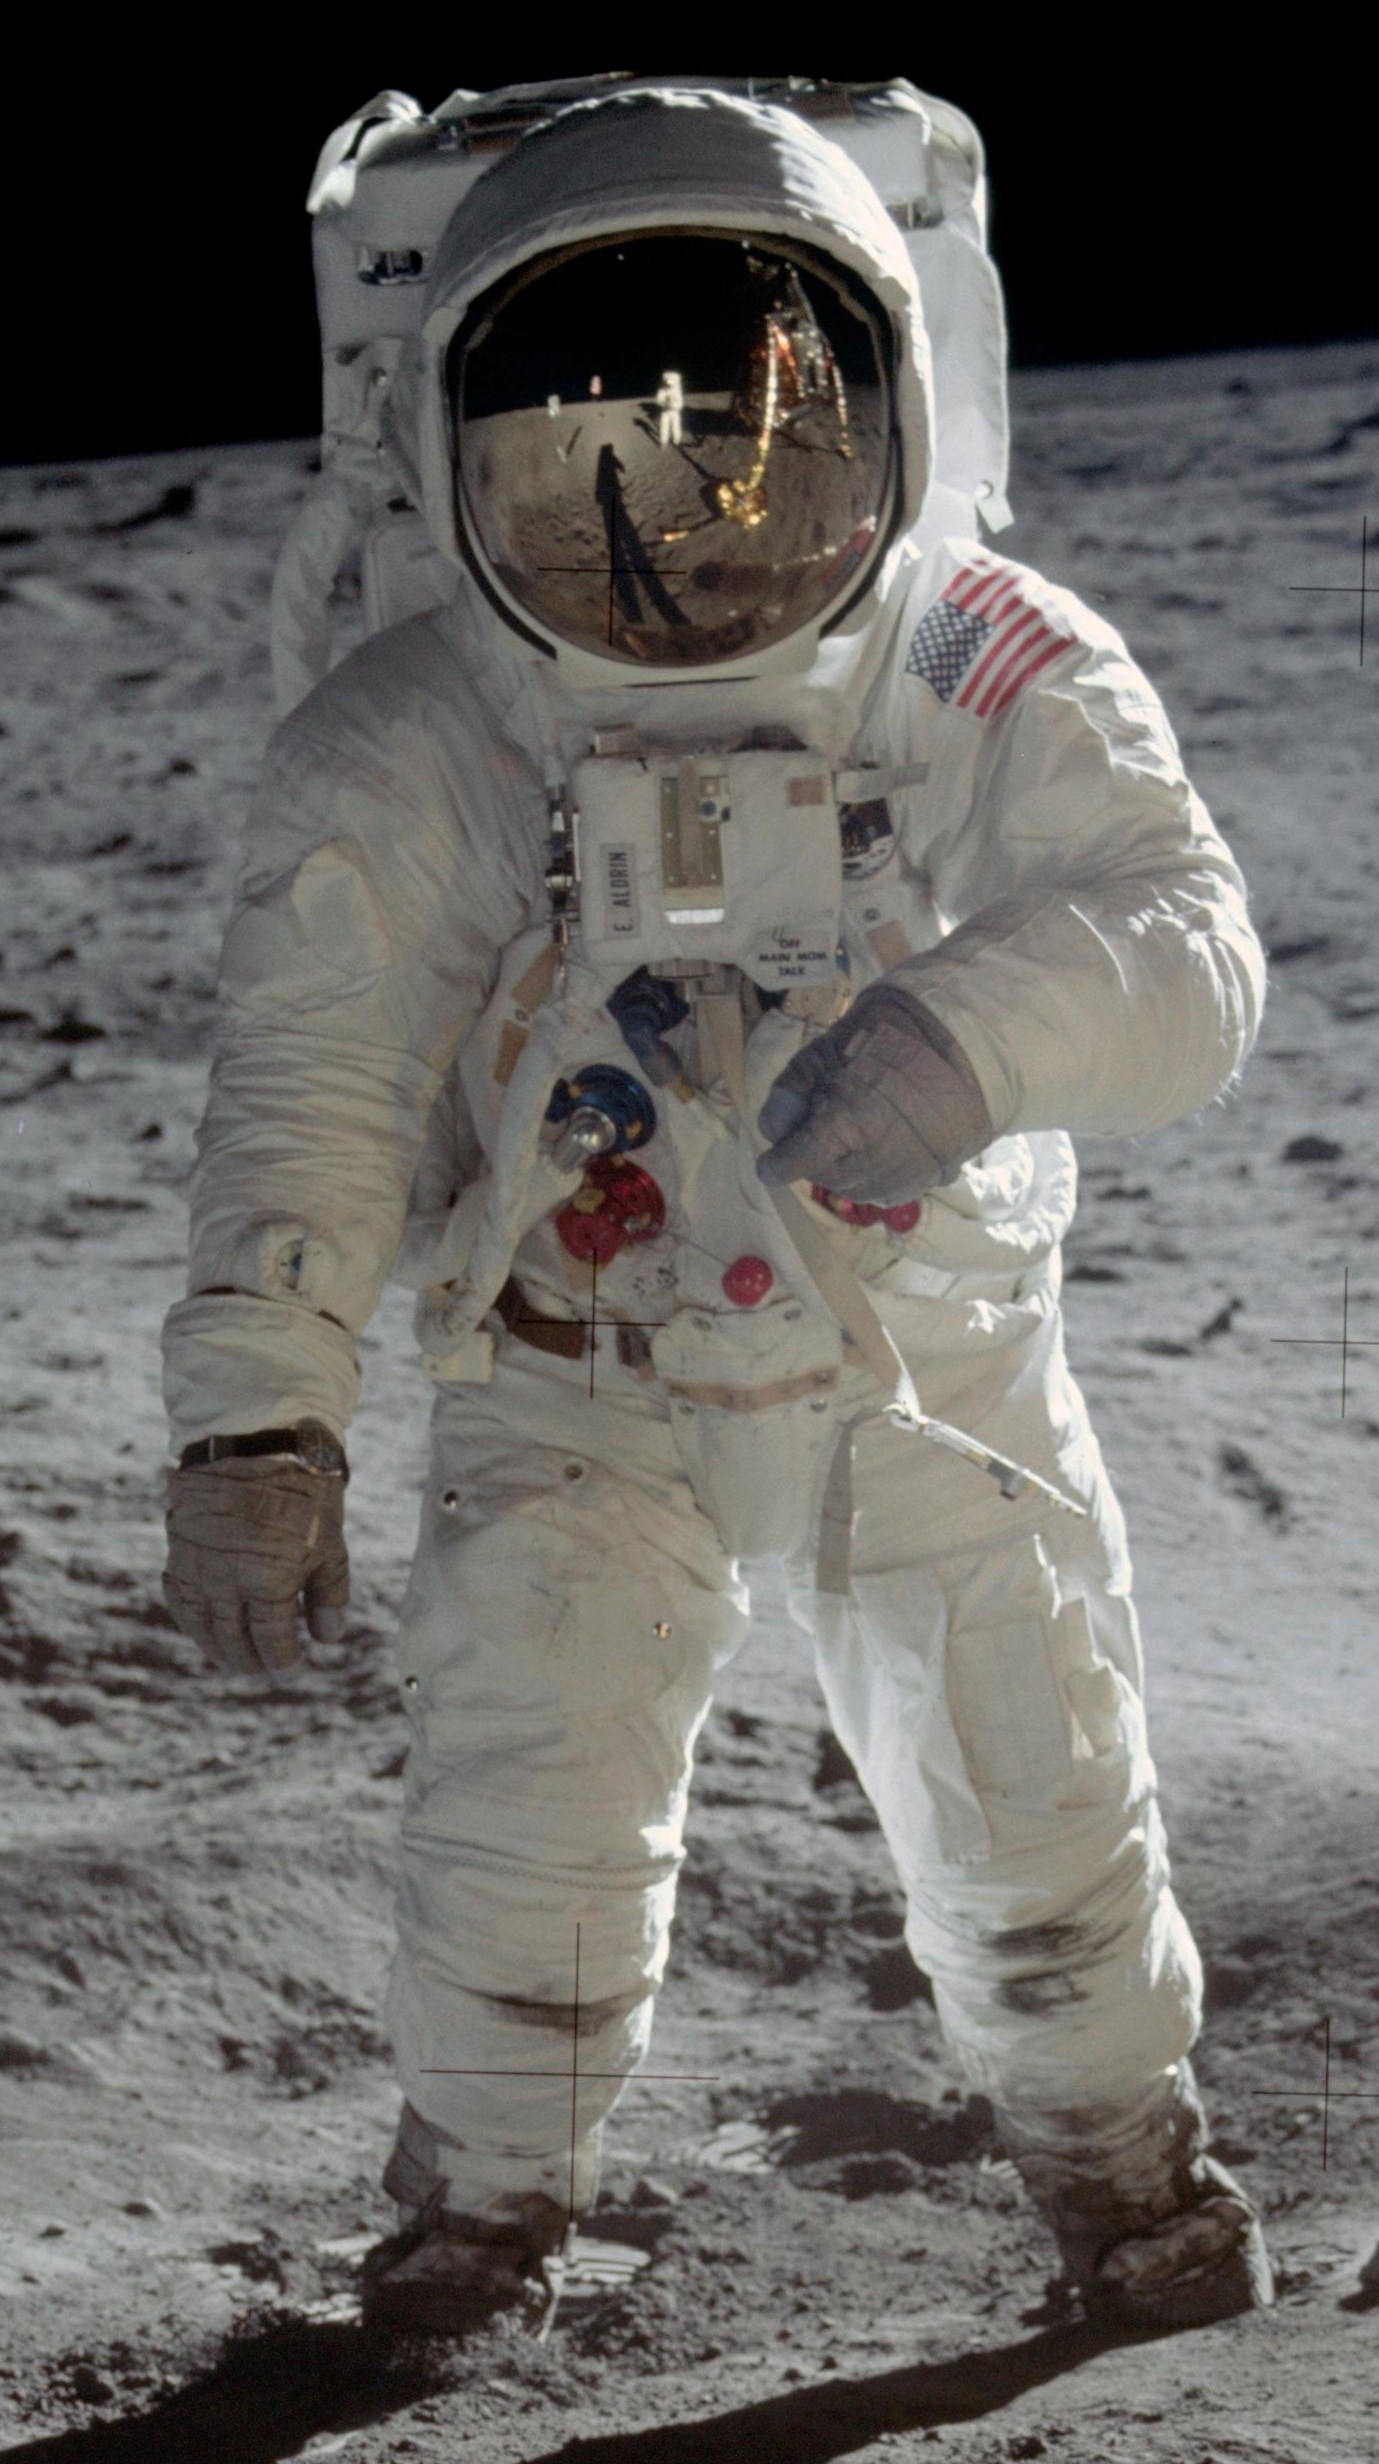 nasa apollo program historical information - photo #8